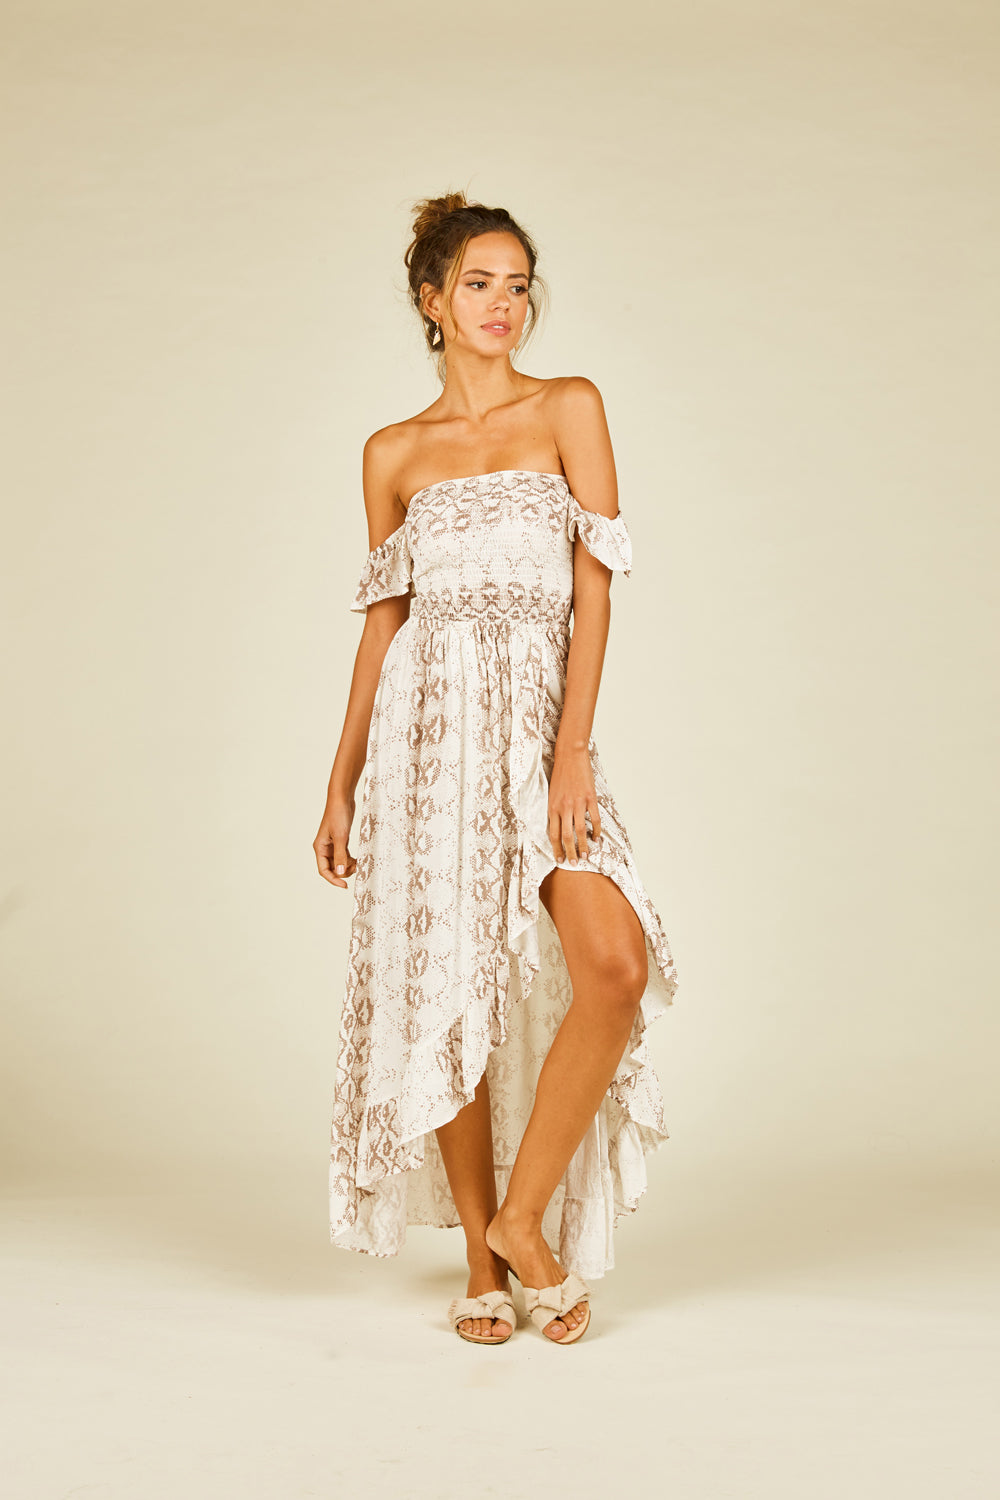 Neutral Stripy Snakeskin Maxi Dress